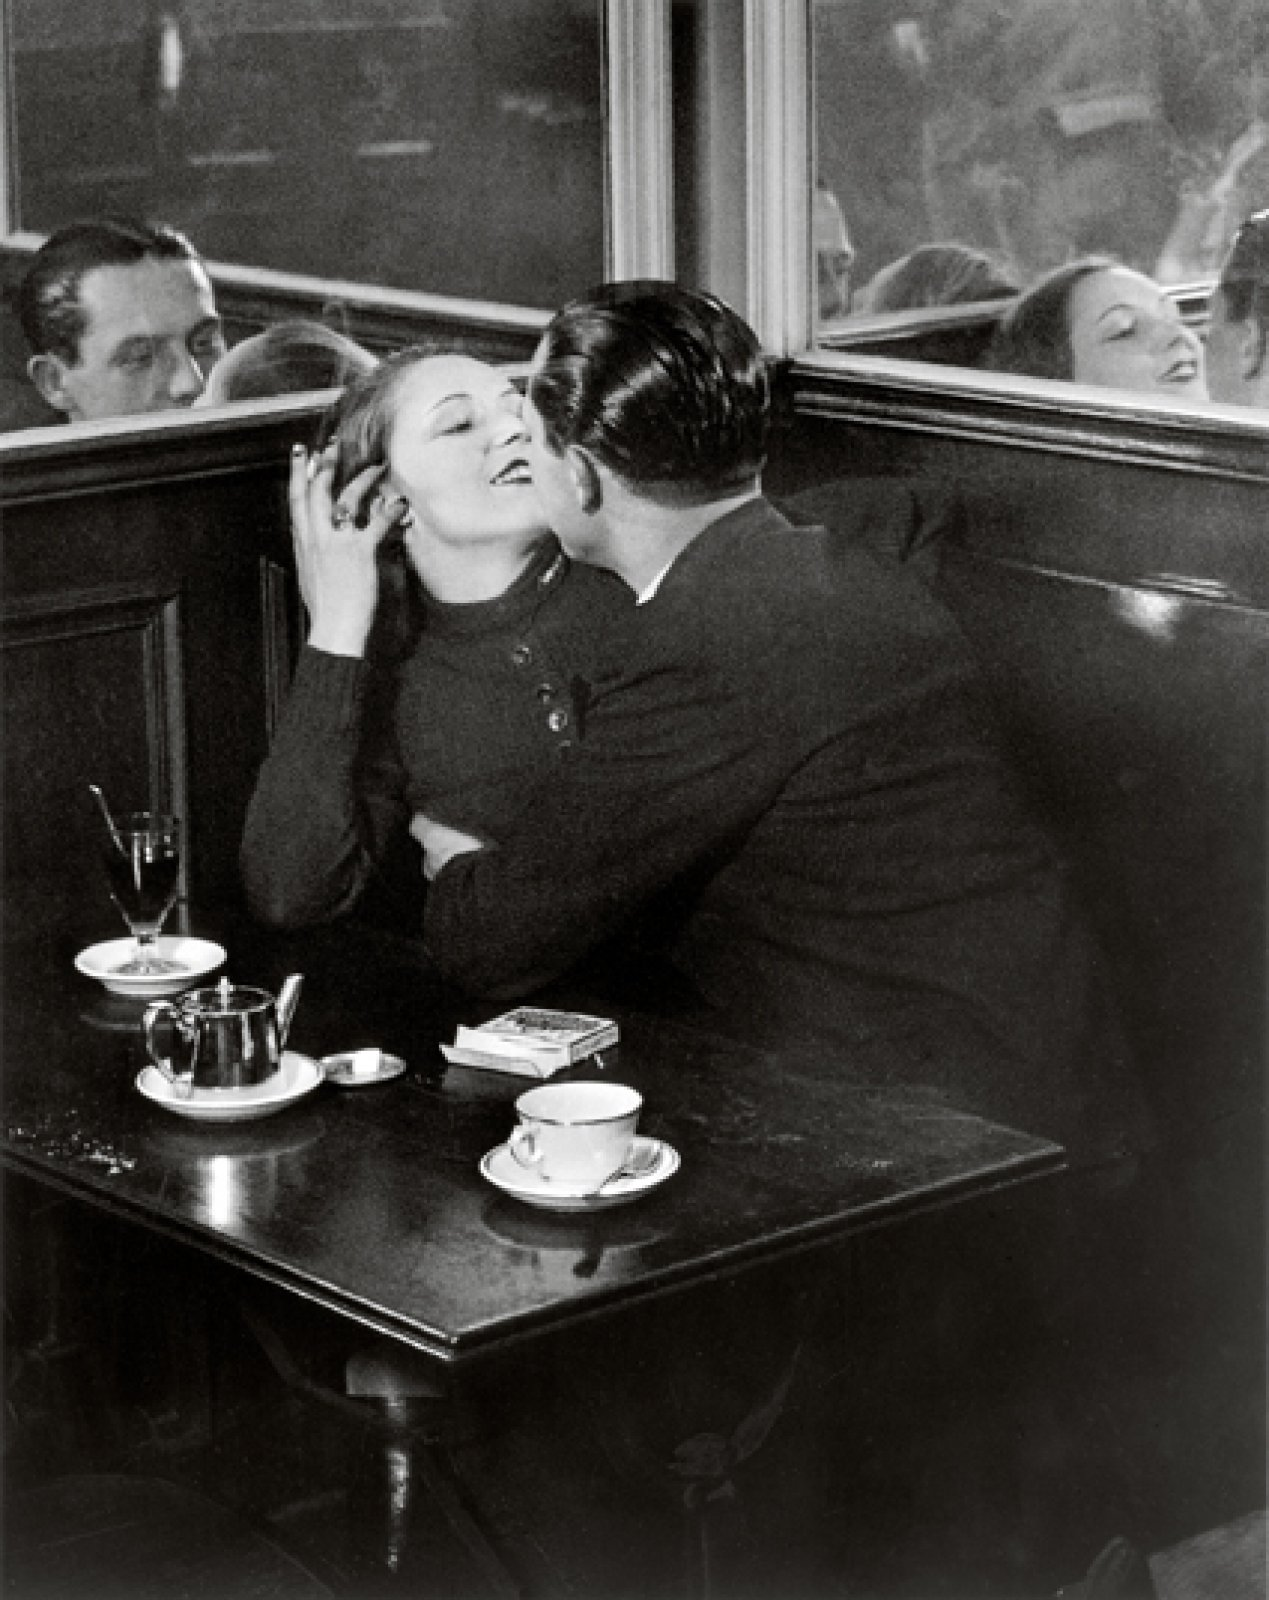 Couple in a Café, near the place d'Italie, c. 1932 © Estate Brassaï Succession, Paris